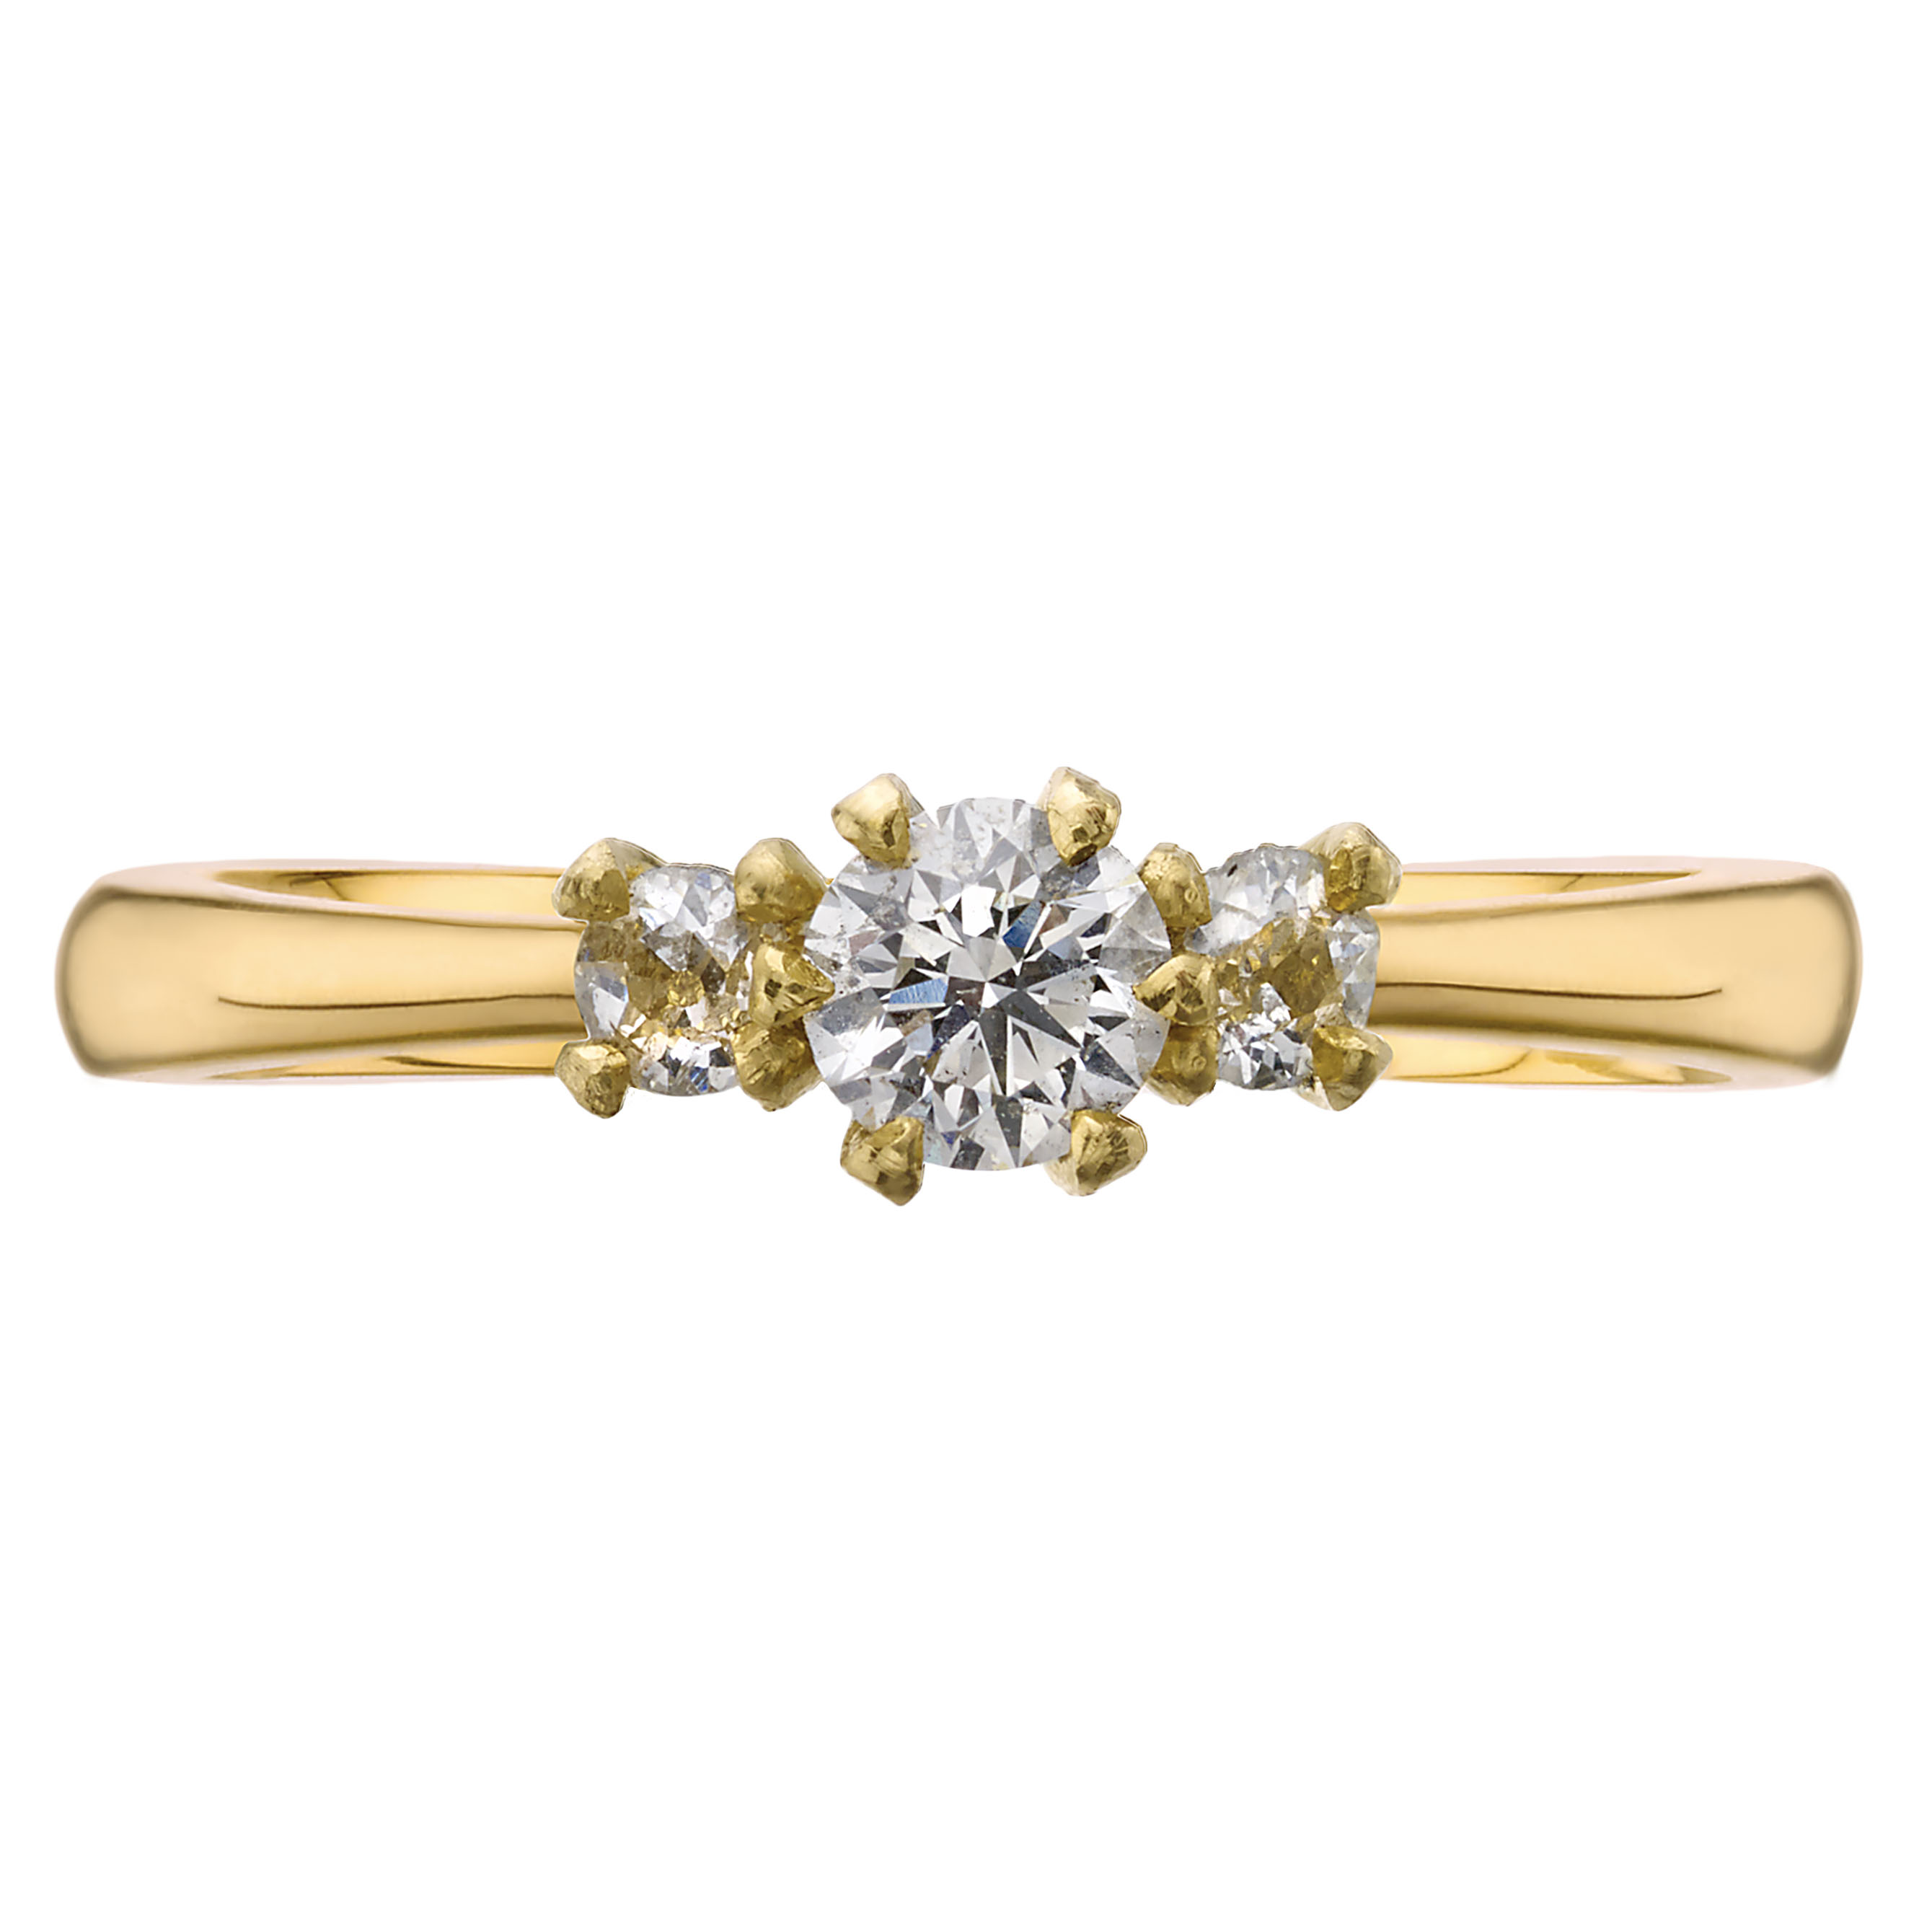 Diamond_engagement_ring_Fairtrade_Gold_plan_sq